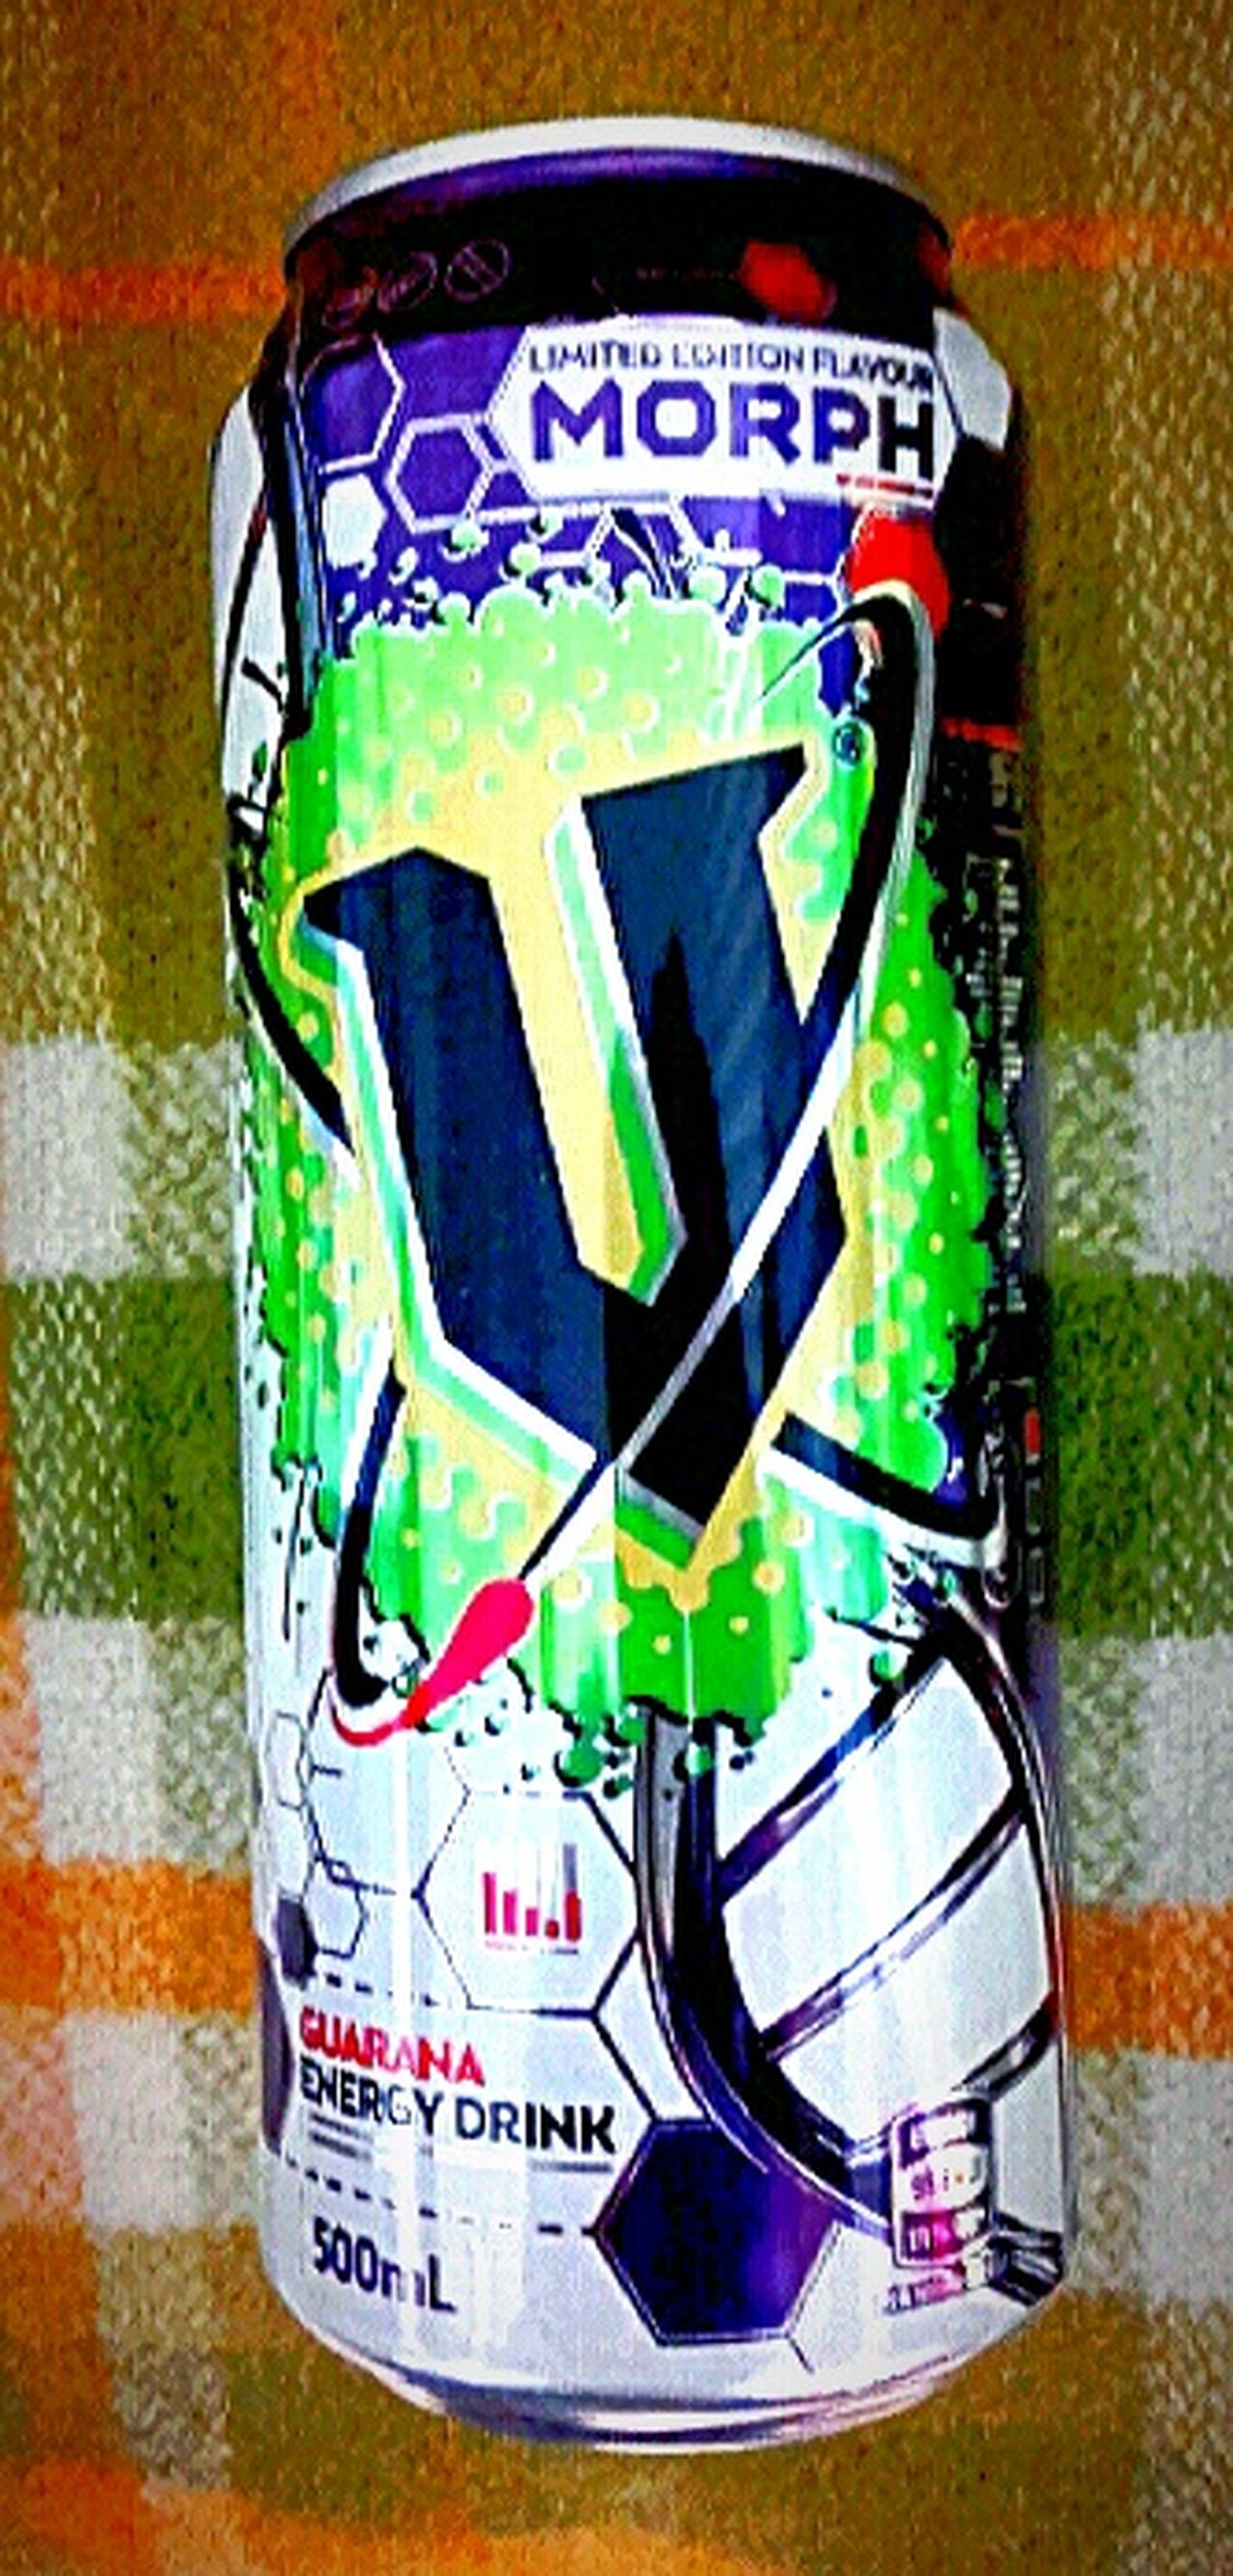 V Energy Drink Cans Drink Cans Energydrink Morph Guarana & Caffeine V Energy Drink Aluminium Cans Energyboost Energydrinks Drinkcans Energy Drinks Aluminum Can Guarana Aluminum Drinkcan Guarana Energy Drinks Aluminium Can EnergyDrinkCans Aluminiumcans Aluminiumcan Aluminum Cans Can Aluminium